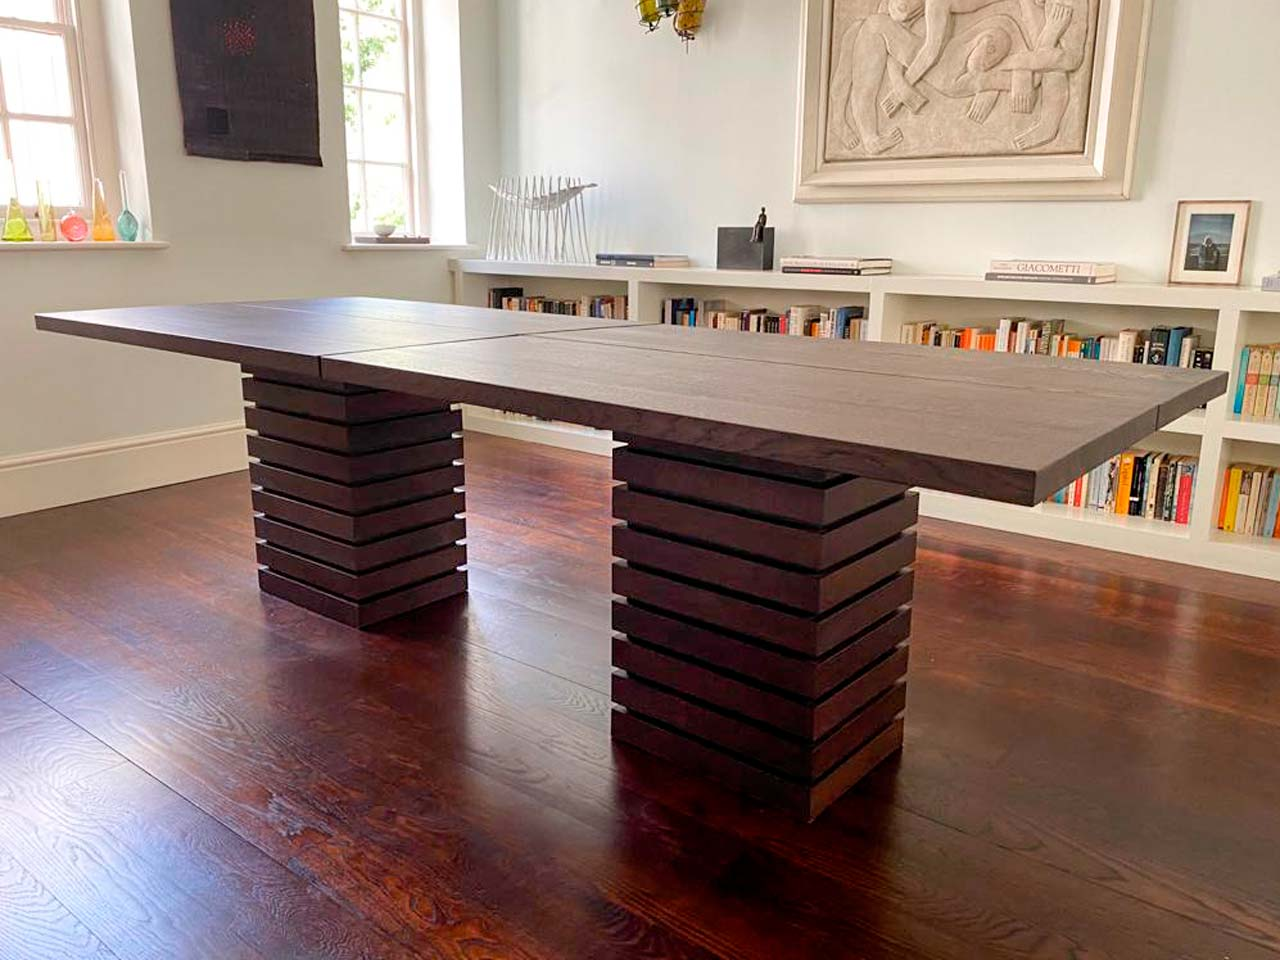 abacus-tables-project-932-pic-2